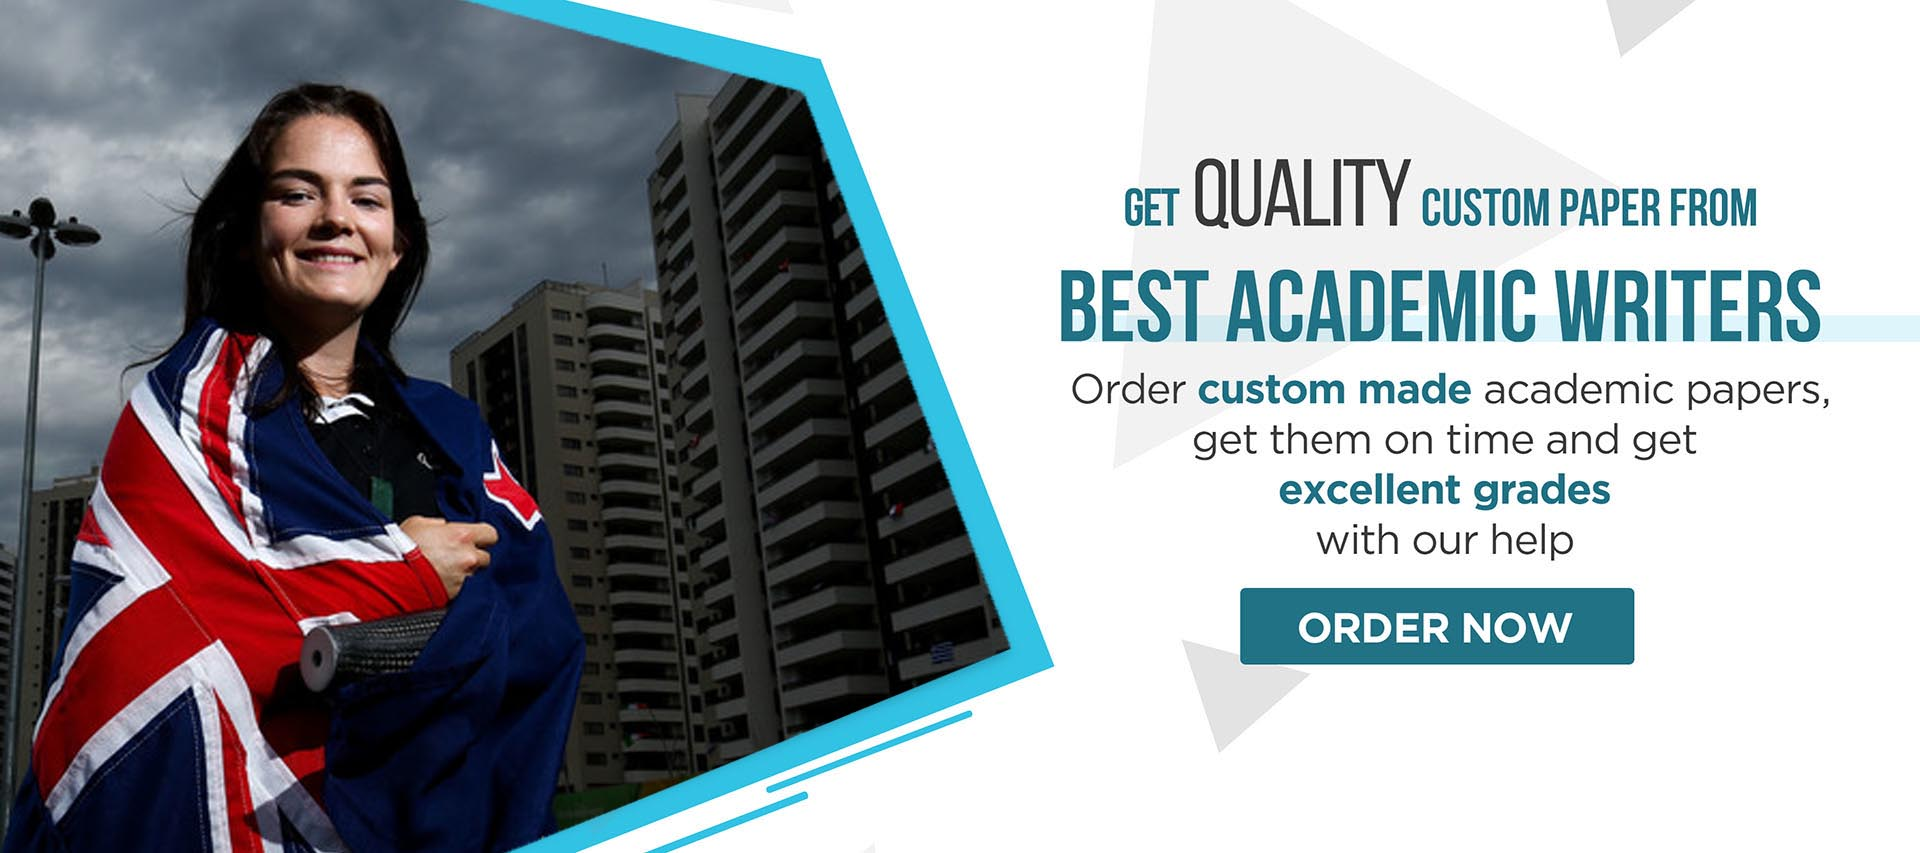 Get Quality custom papers from Best Academic Writers